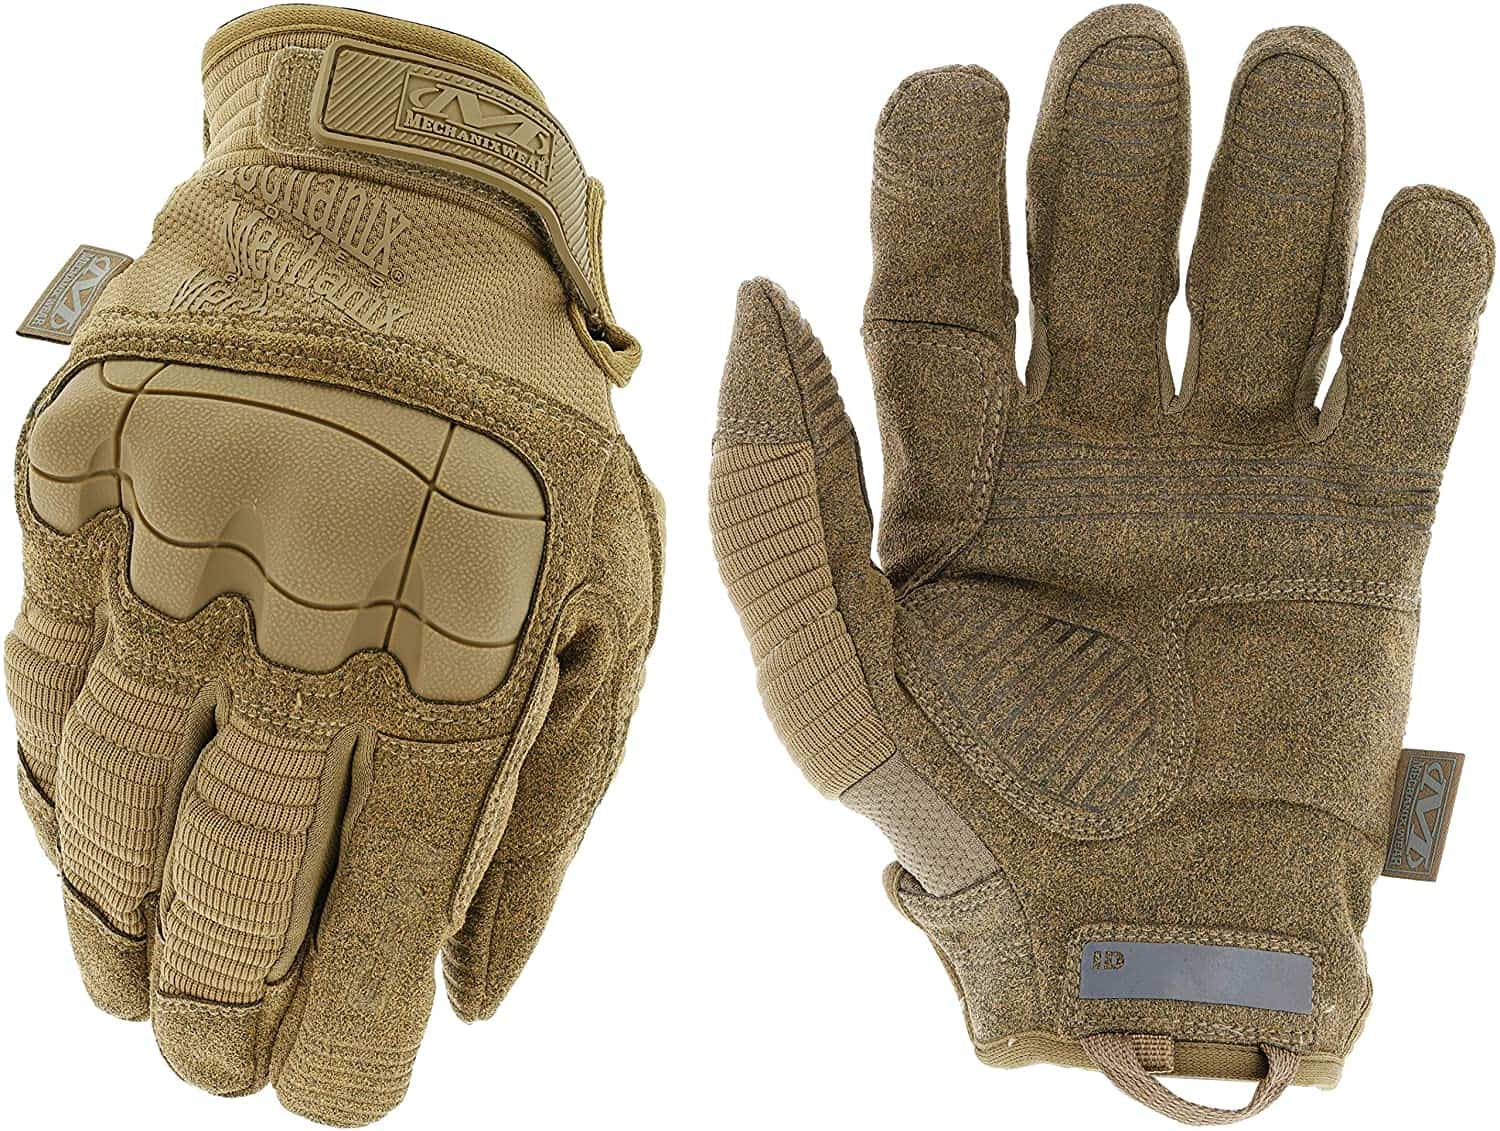 Mechanix Wear M-Pact Coyote Tactical Gloves